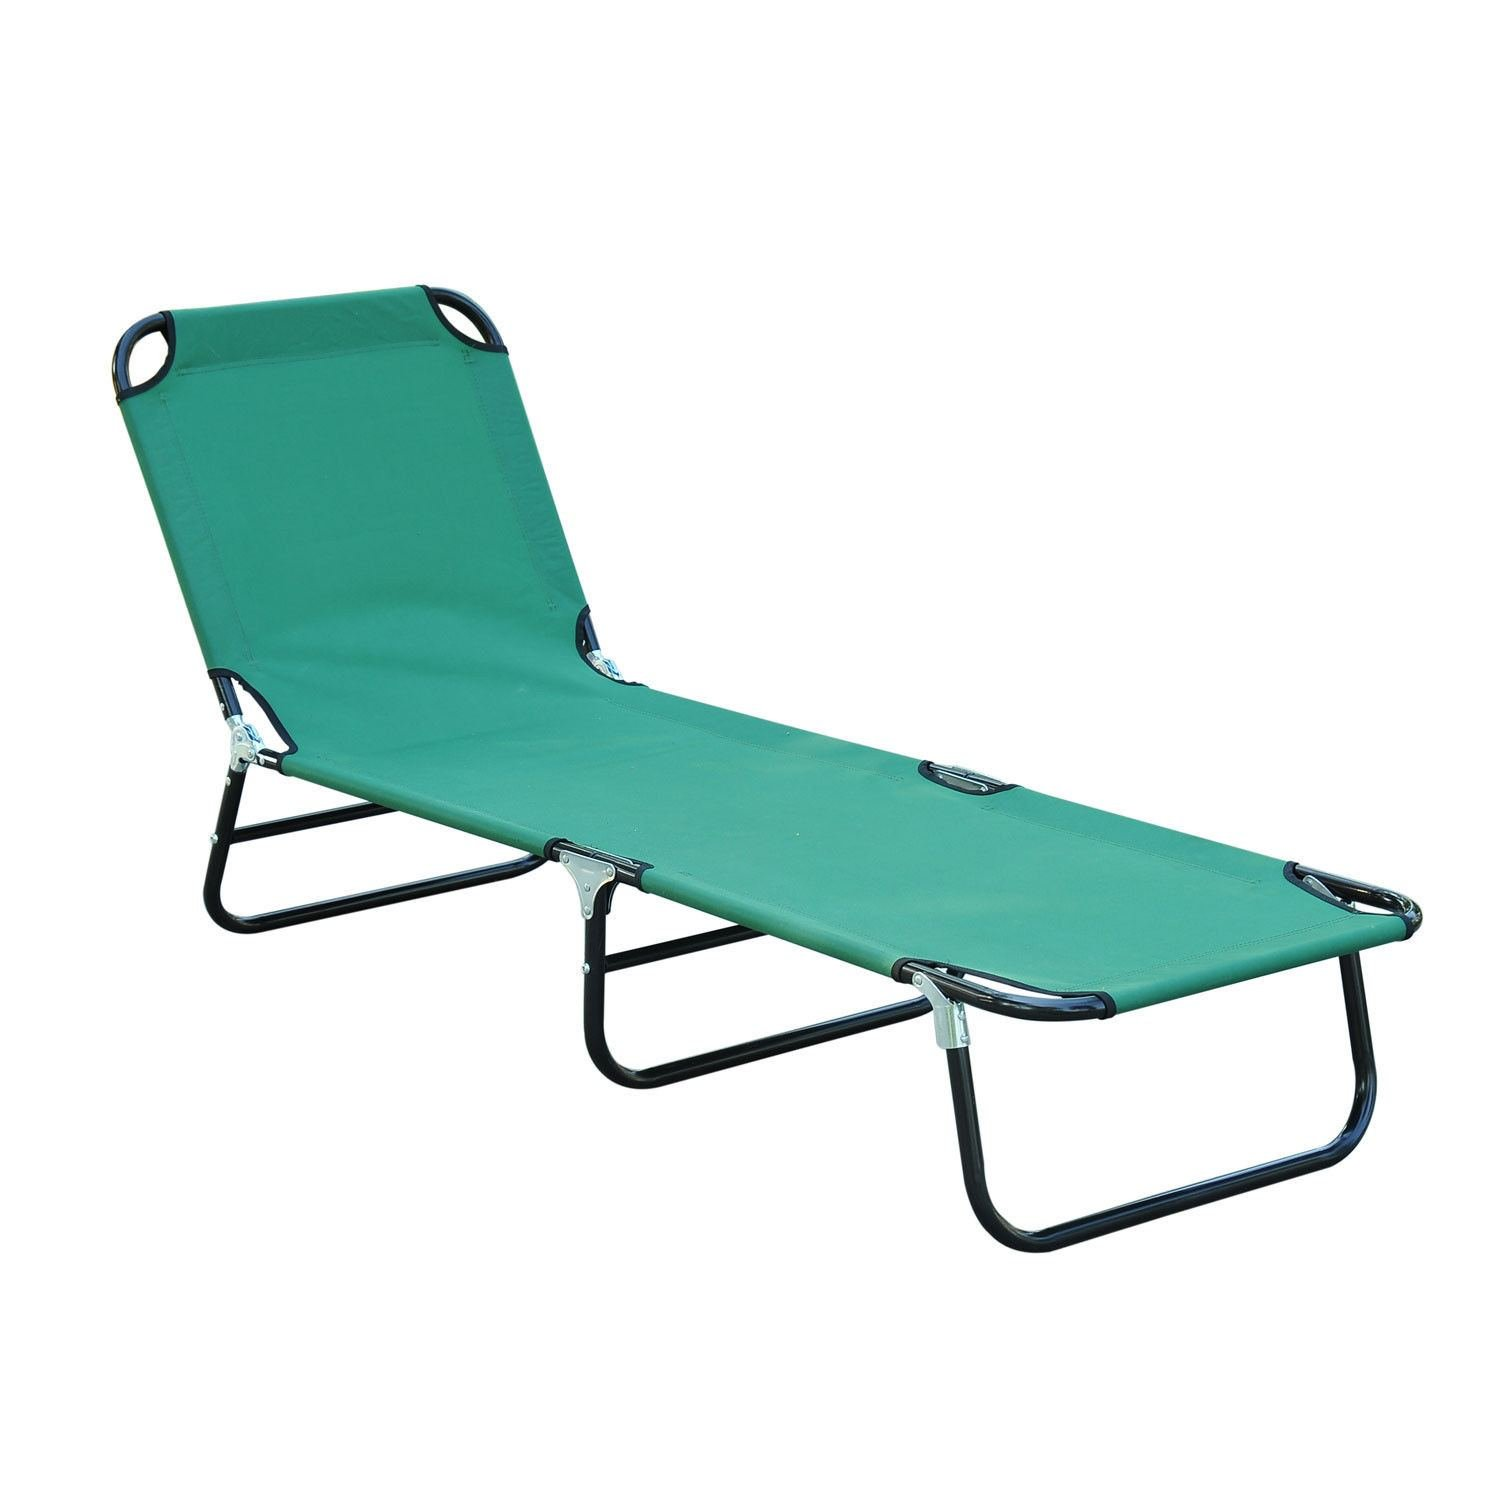 amazoncom outdoor sun chaise lounge recliner patio camping cot bed beach pool chair fold garden outdoor - Patio Lounge Chairs